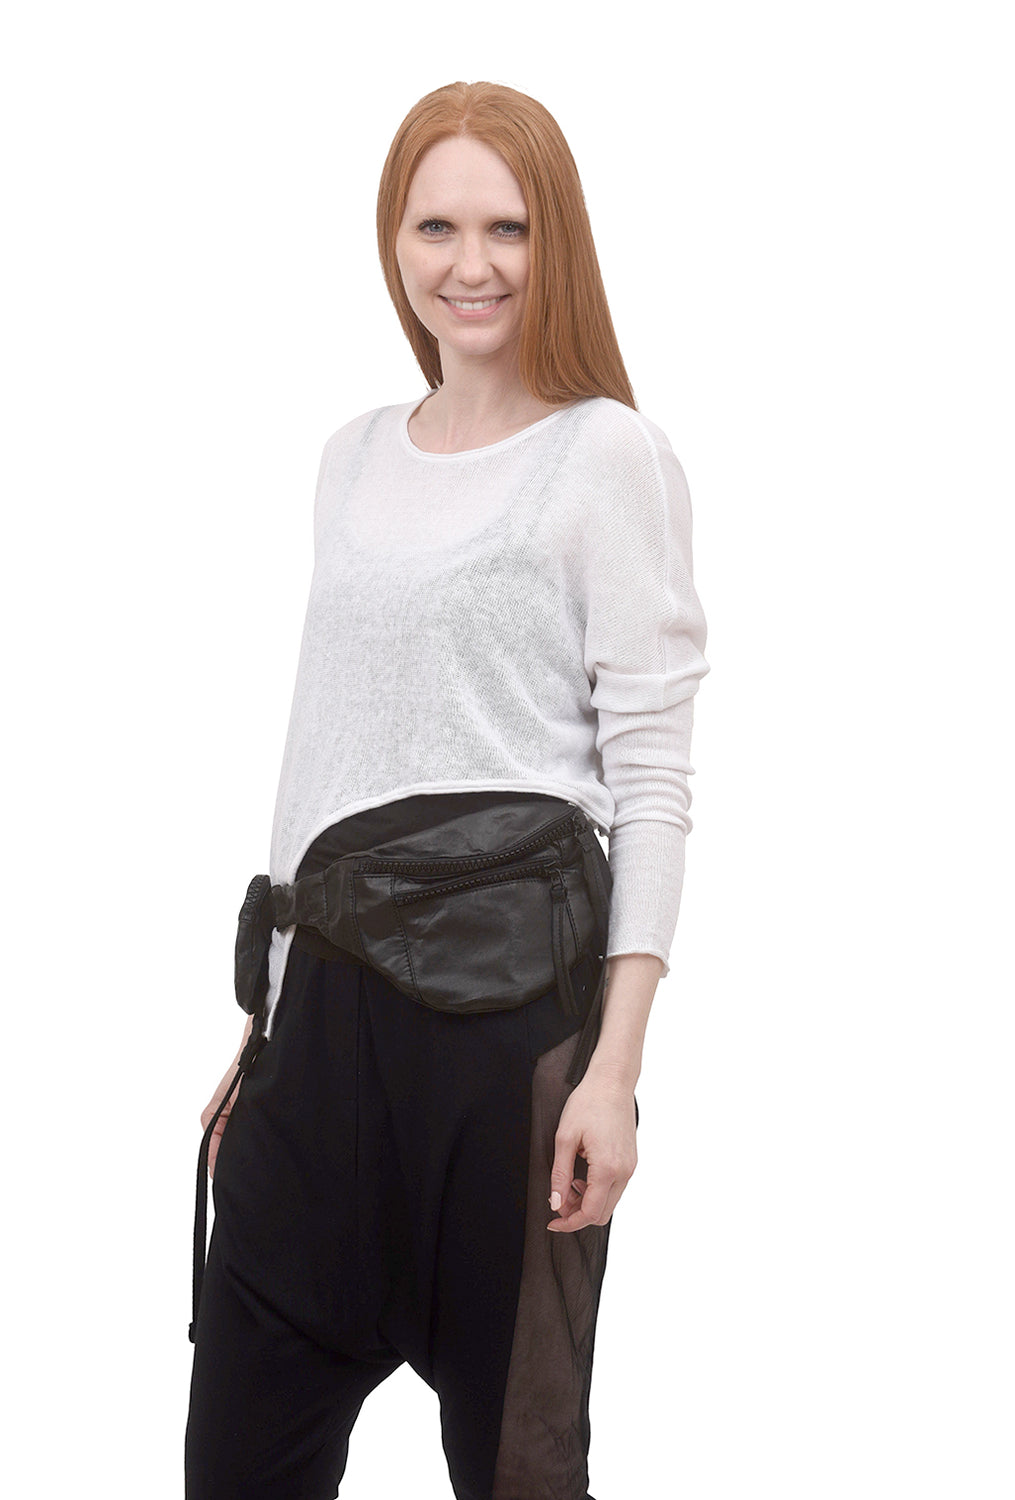 Studio B3 Niva Bum Bag, Black